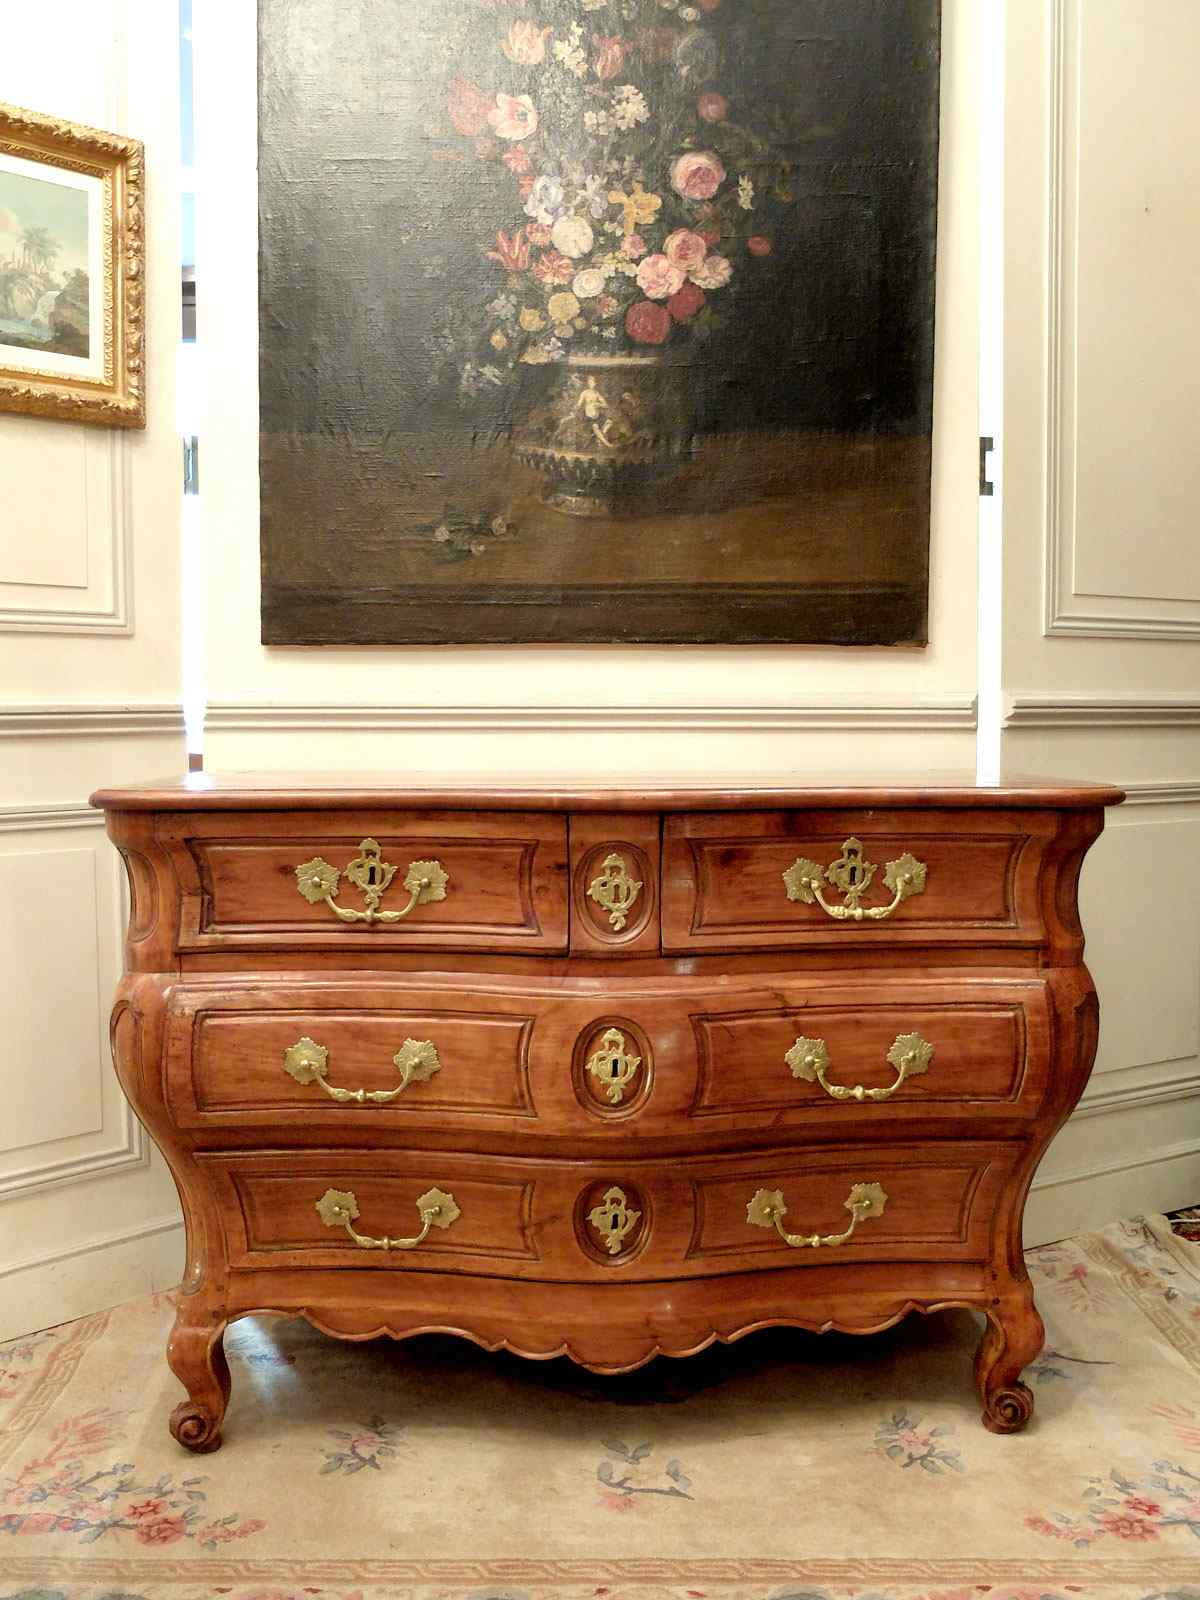 Commode Louis XV period of southwestern France